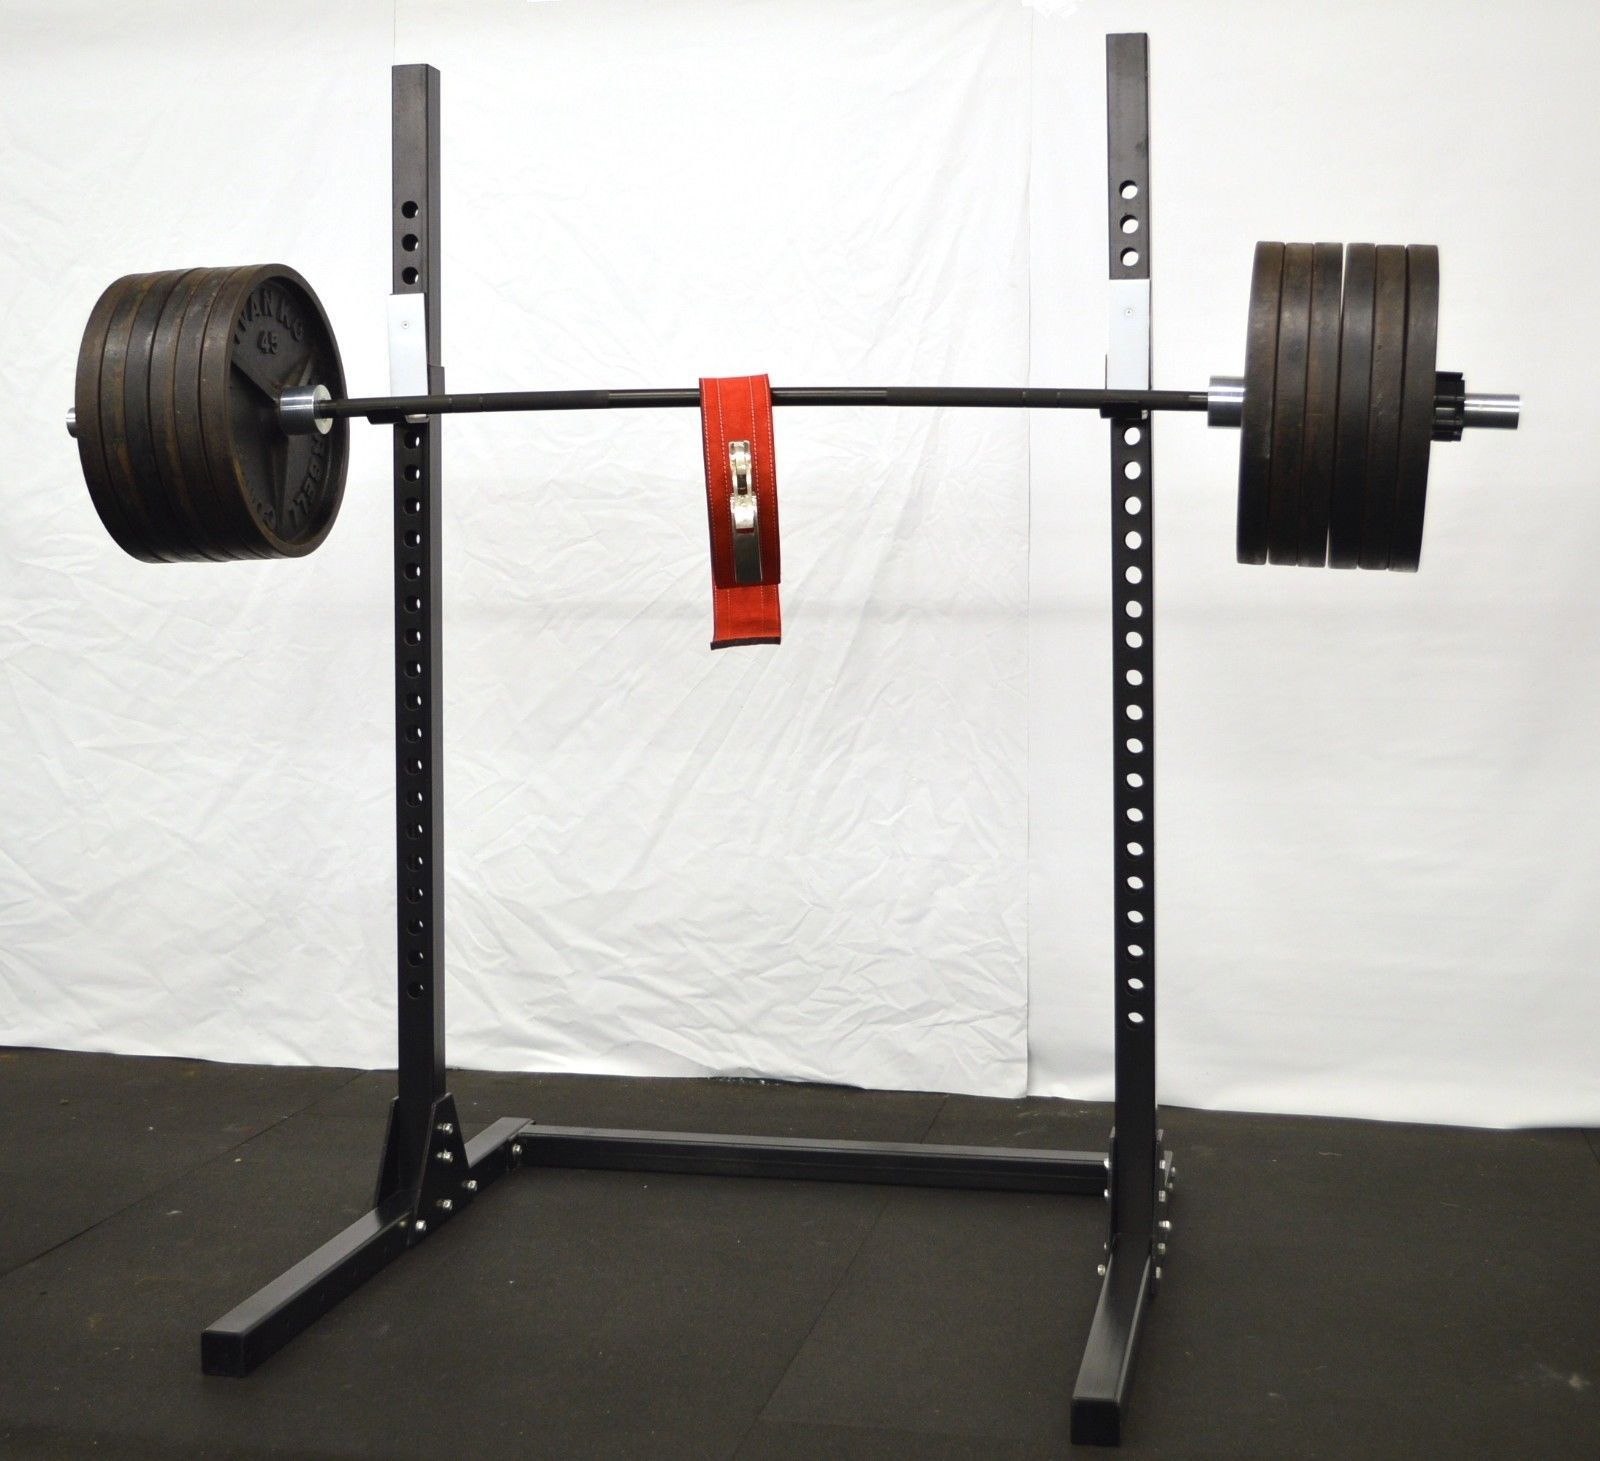 powerrack rack commercial squat light weight deal package set adjustable olympic bench fincl wht power press